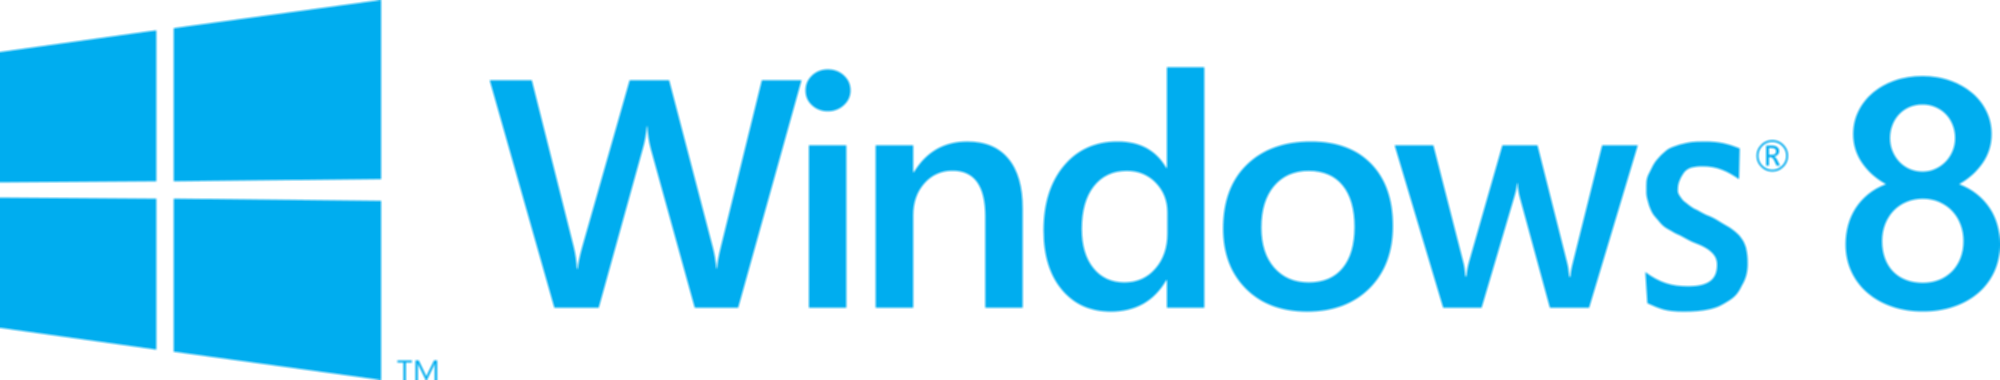 파일:external/upload.wikimedia.org/2000px-Windows_8_logo_and_wordmark.svg.png